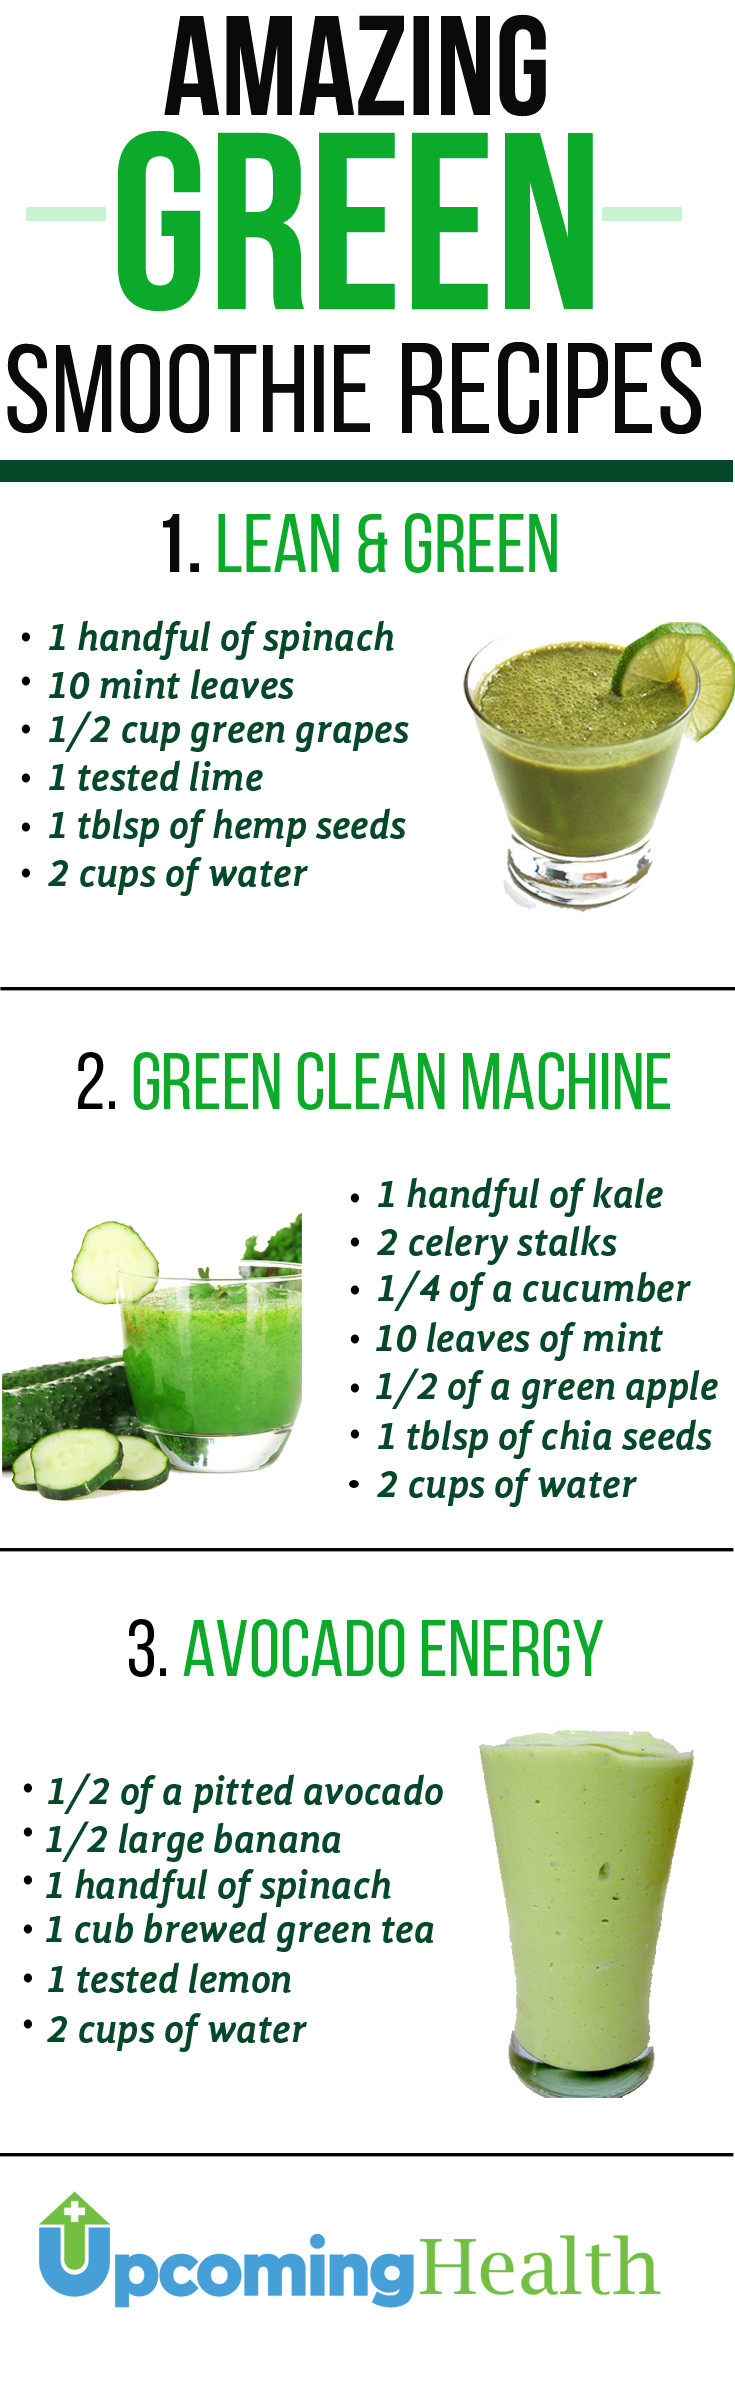 Healthy Green Smoothie Recipes  Green Smoothies Will Revolutionize Your Health